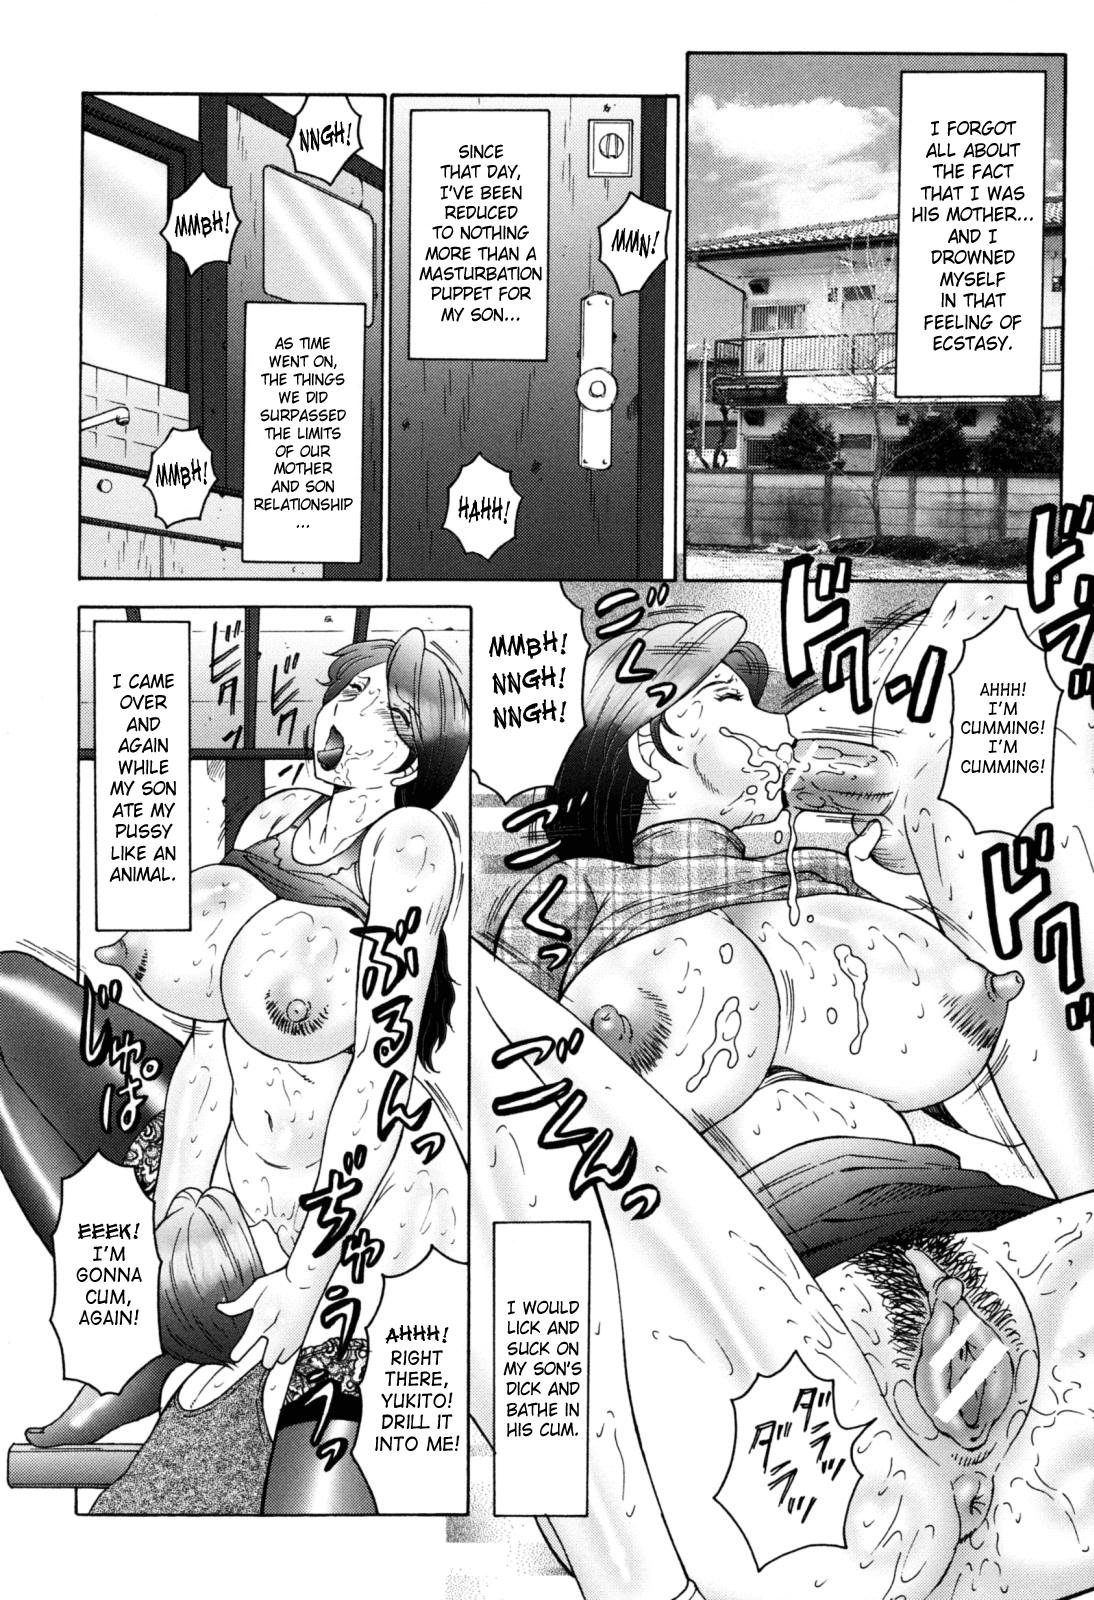 [Fuusen Club] Boshino Toriko - The Captive of Mother and the Son | Enslaved Mother and Son Ch. 1-5 [English] [SaHa] 57